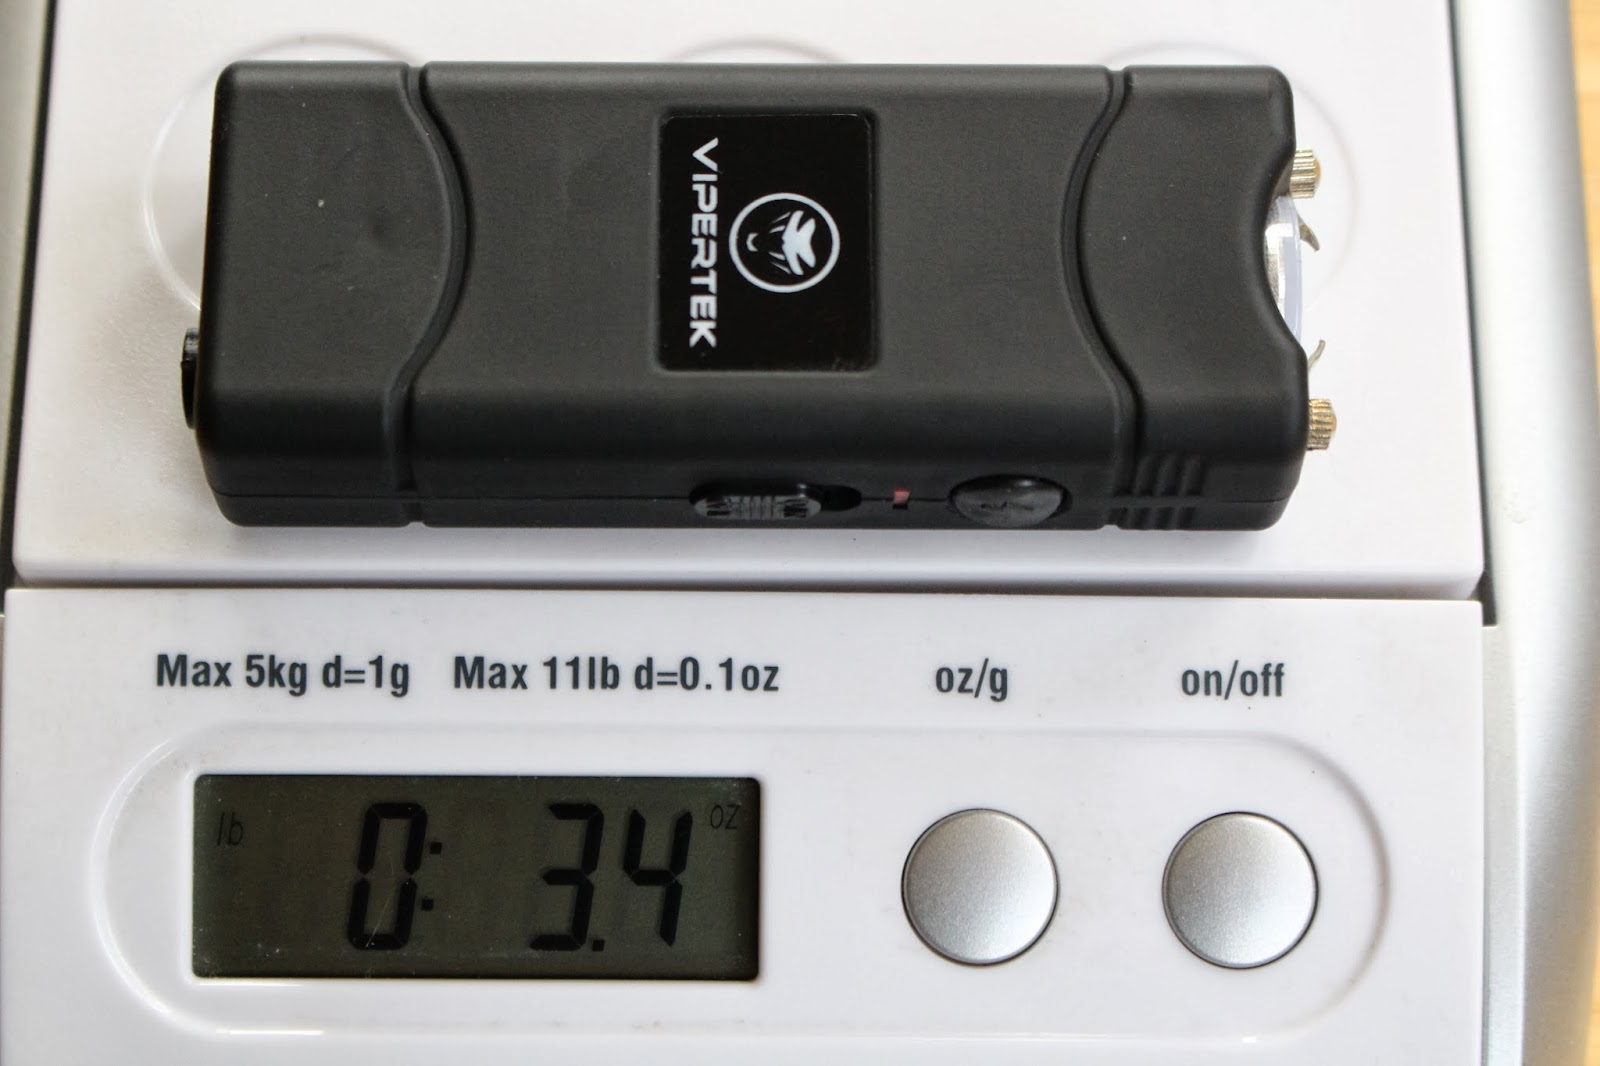 Vipertek VTS-881 On Scale